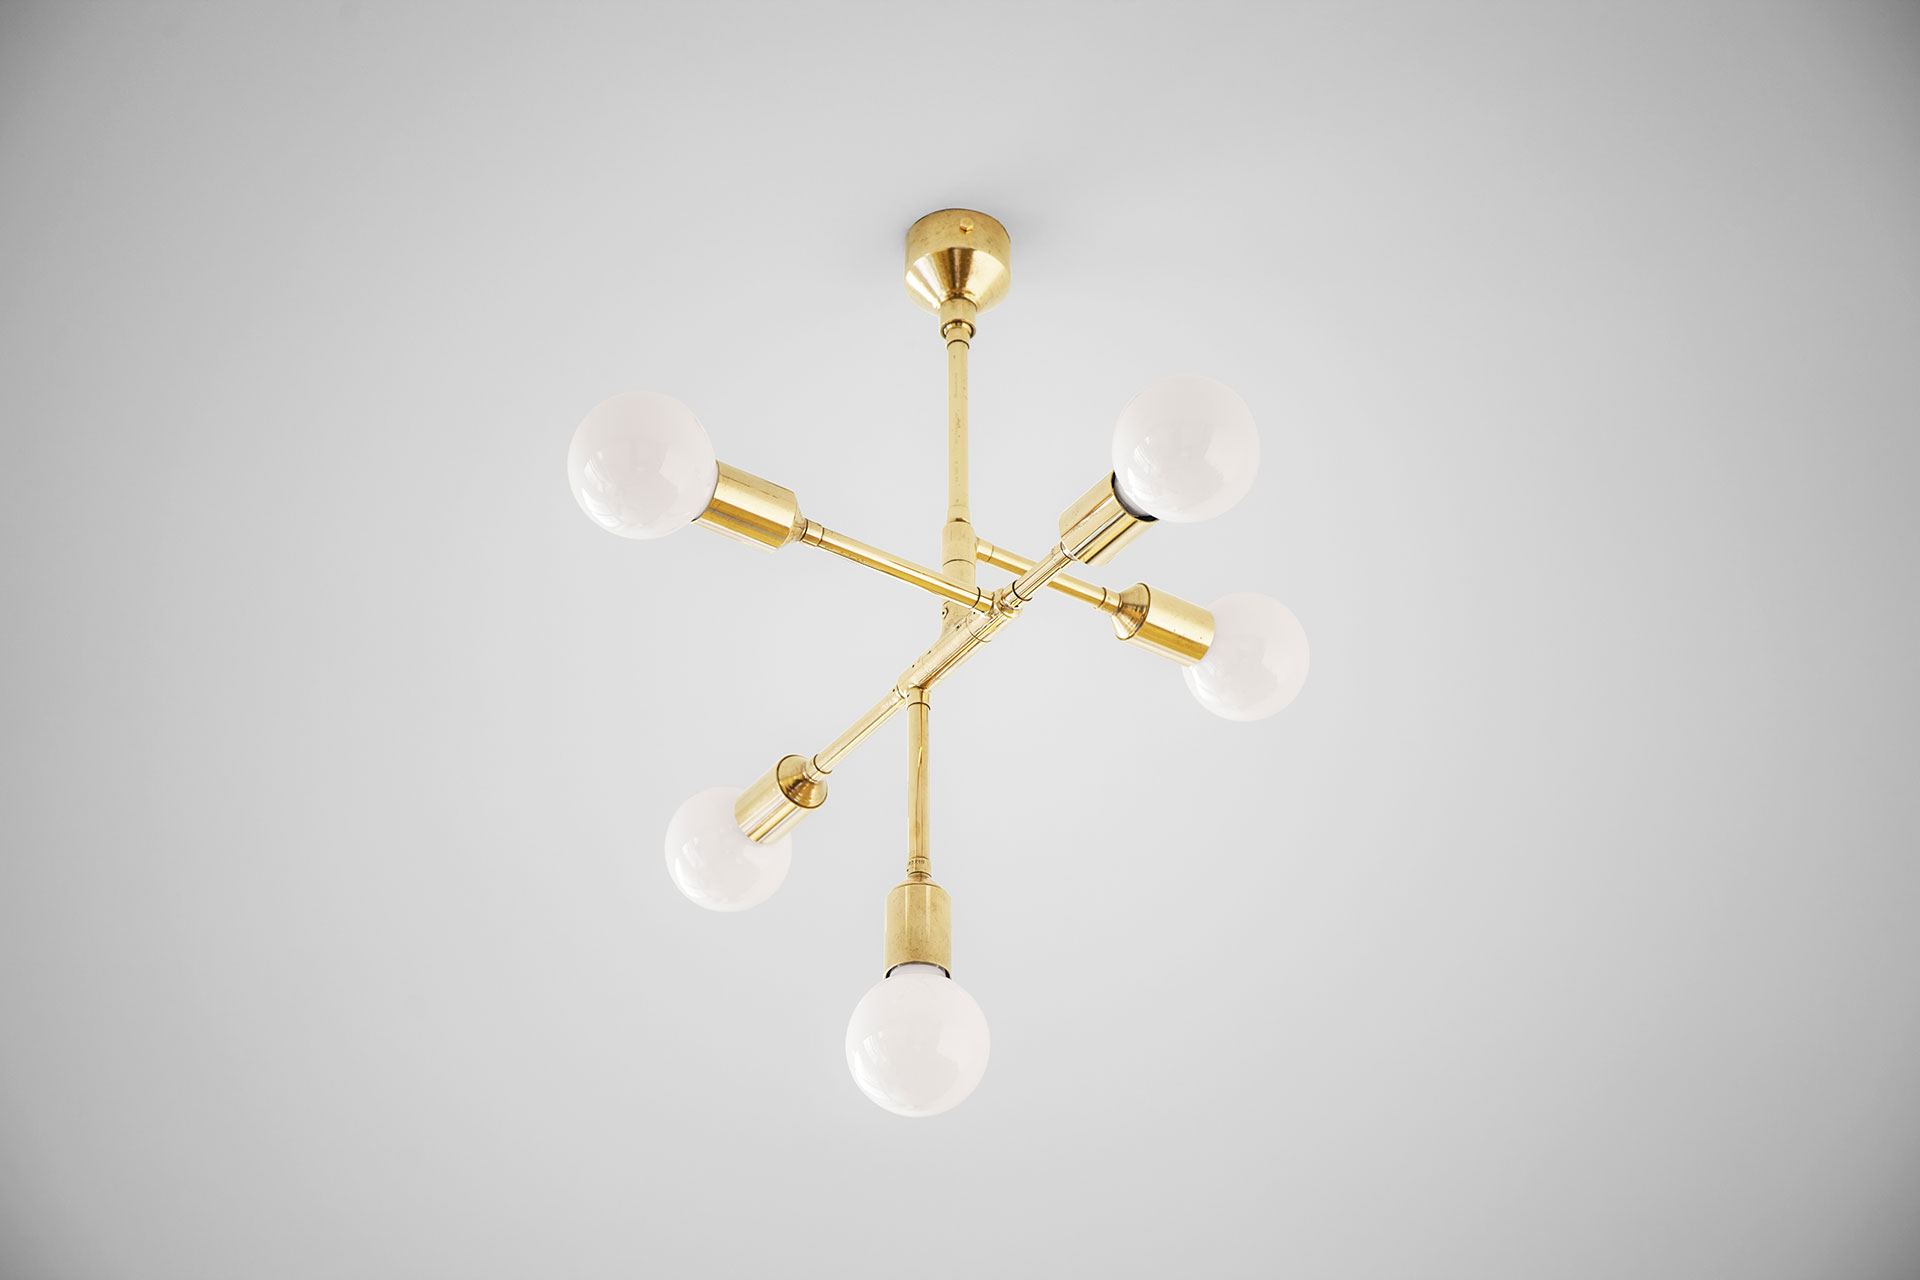 Trendy 5 lights ceiling lamp in copper or brass inspired by mid-century modern design